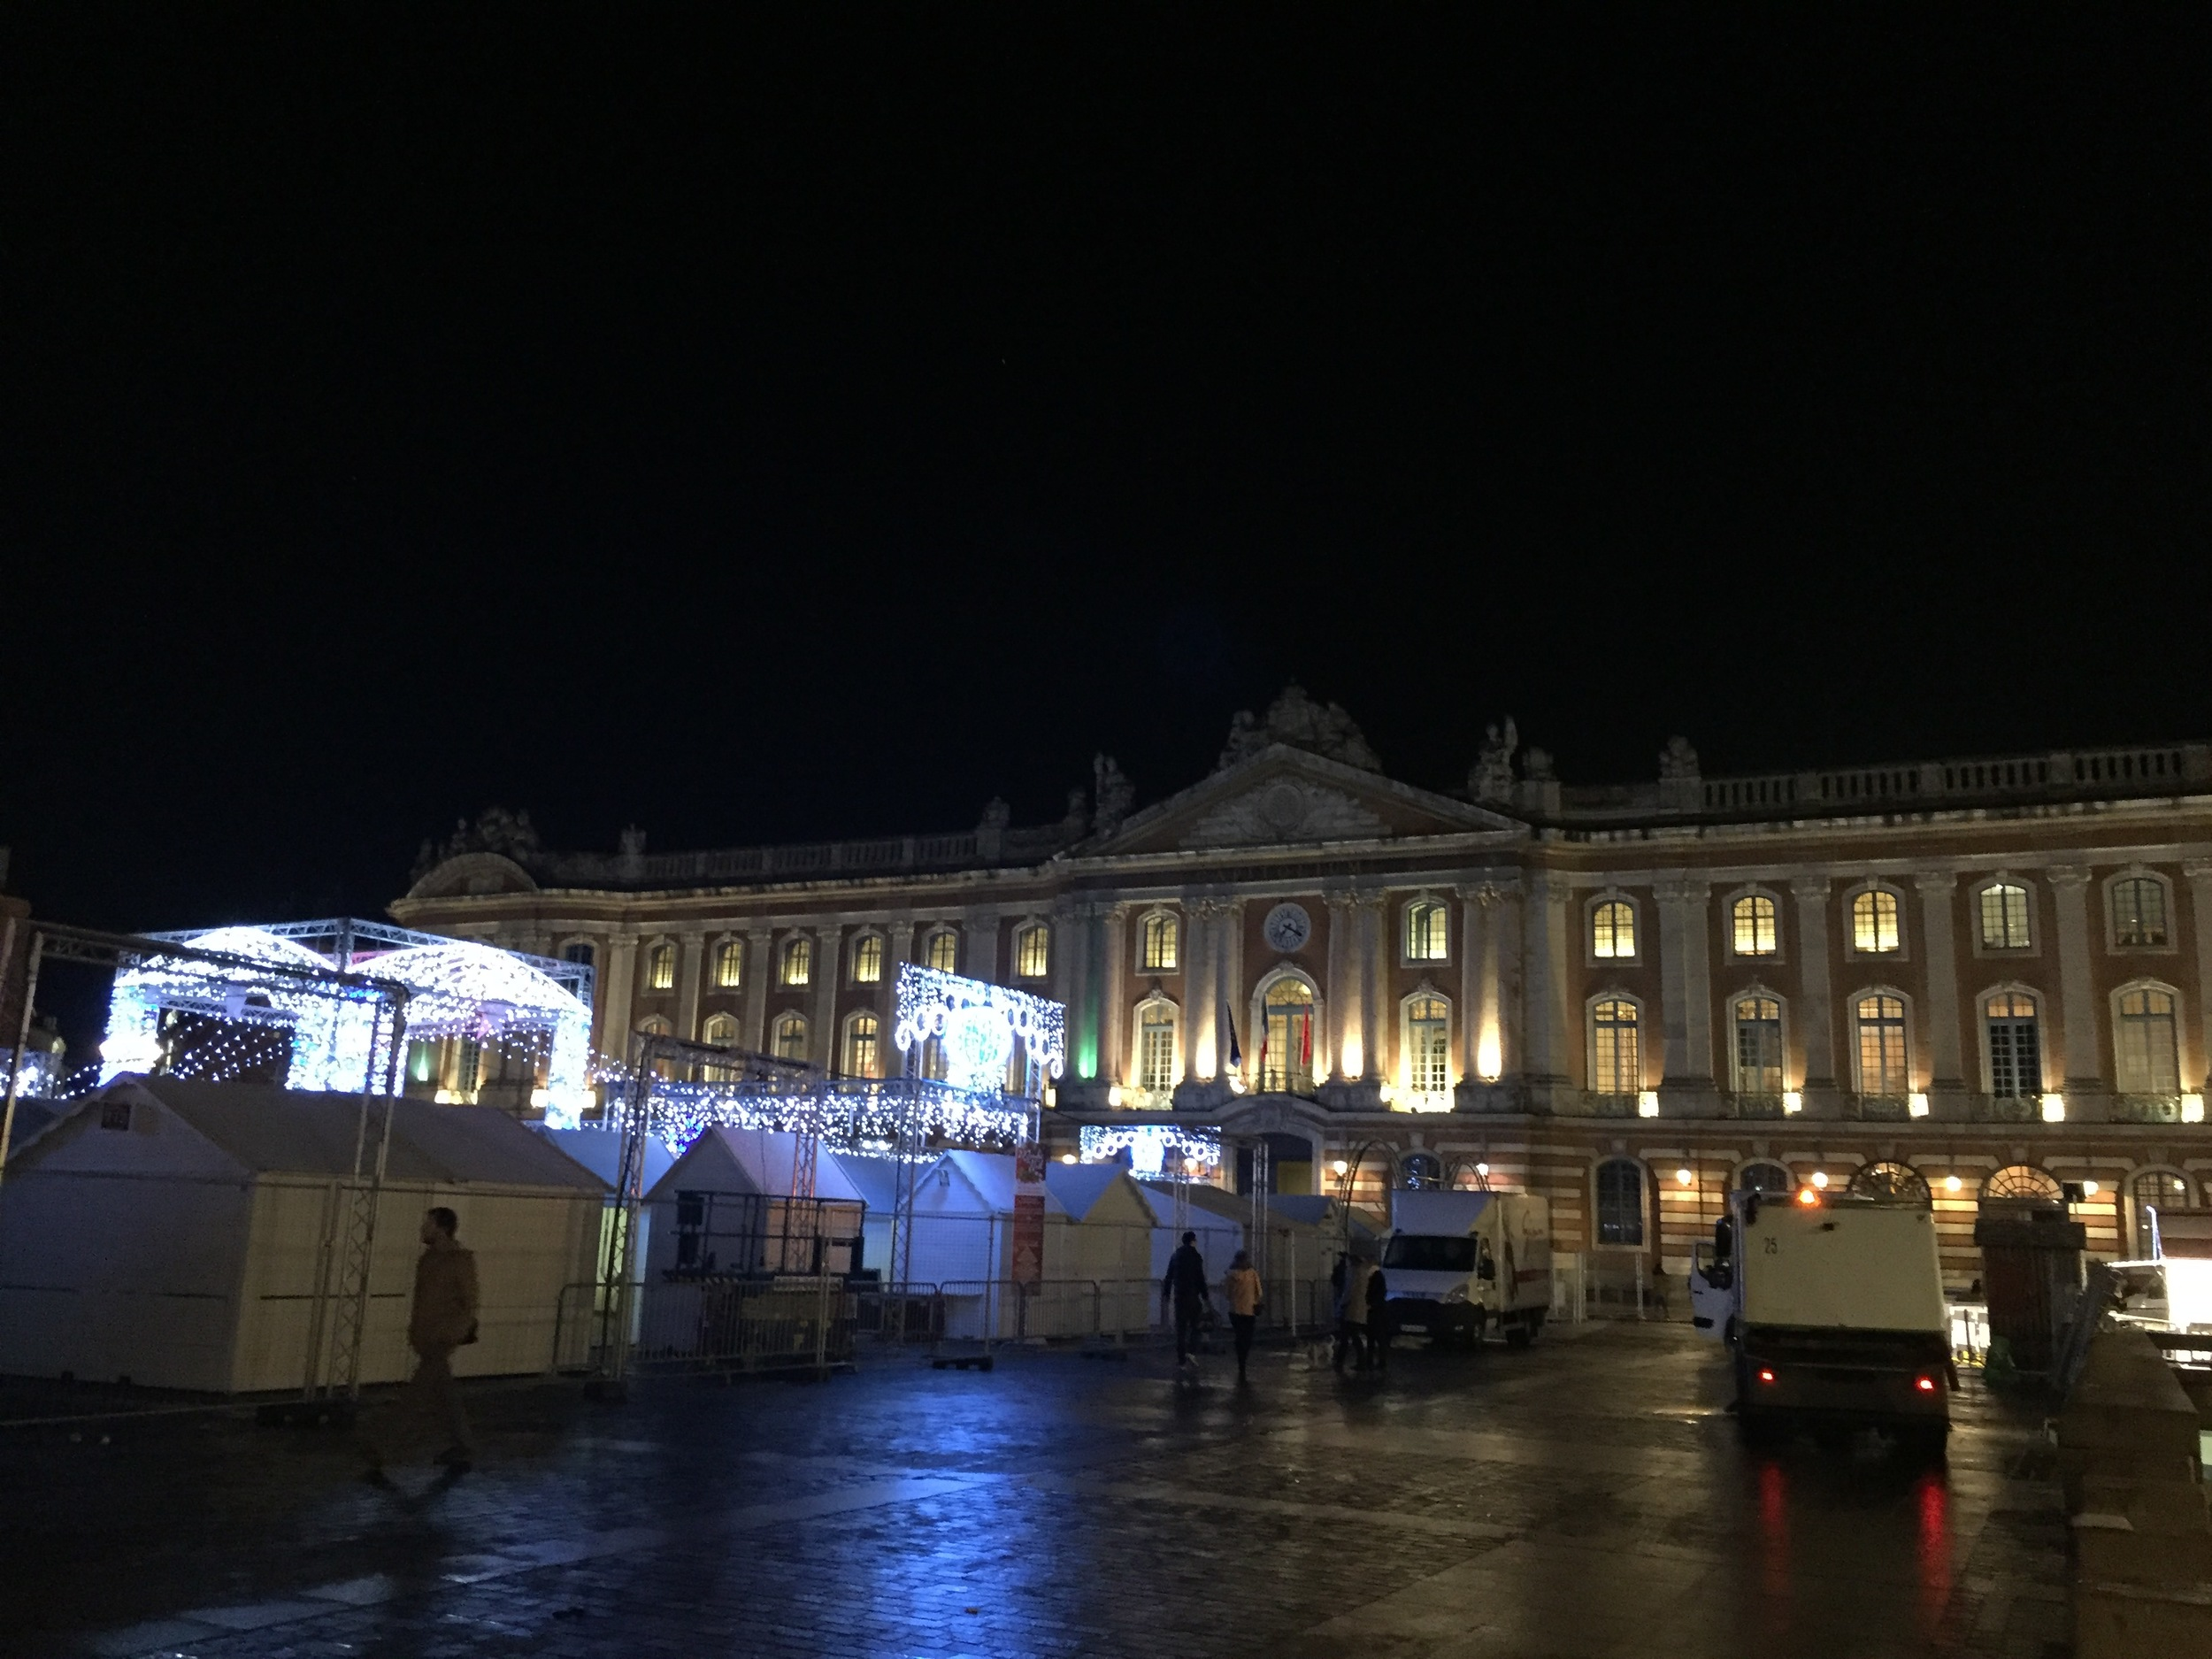 They were setting up a Christmas Market in the main square. Sadly, it didn't open until after we left.